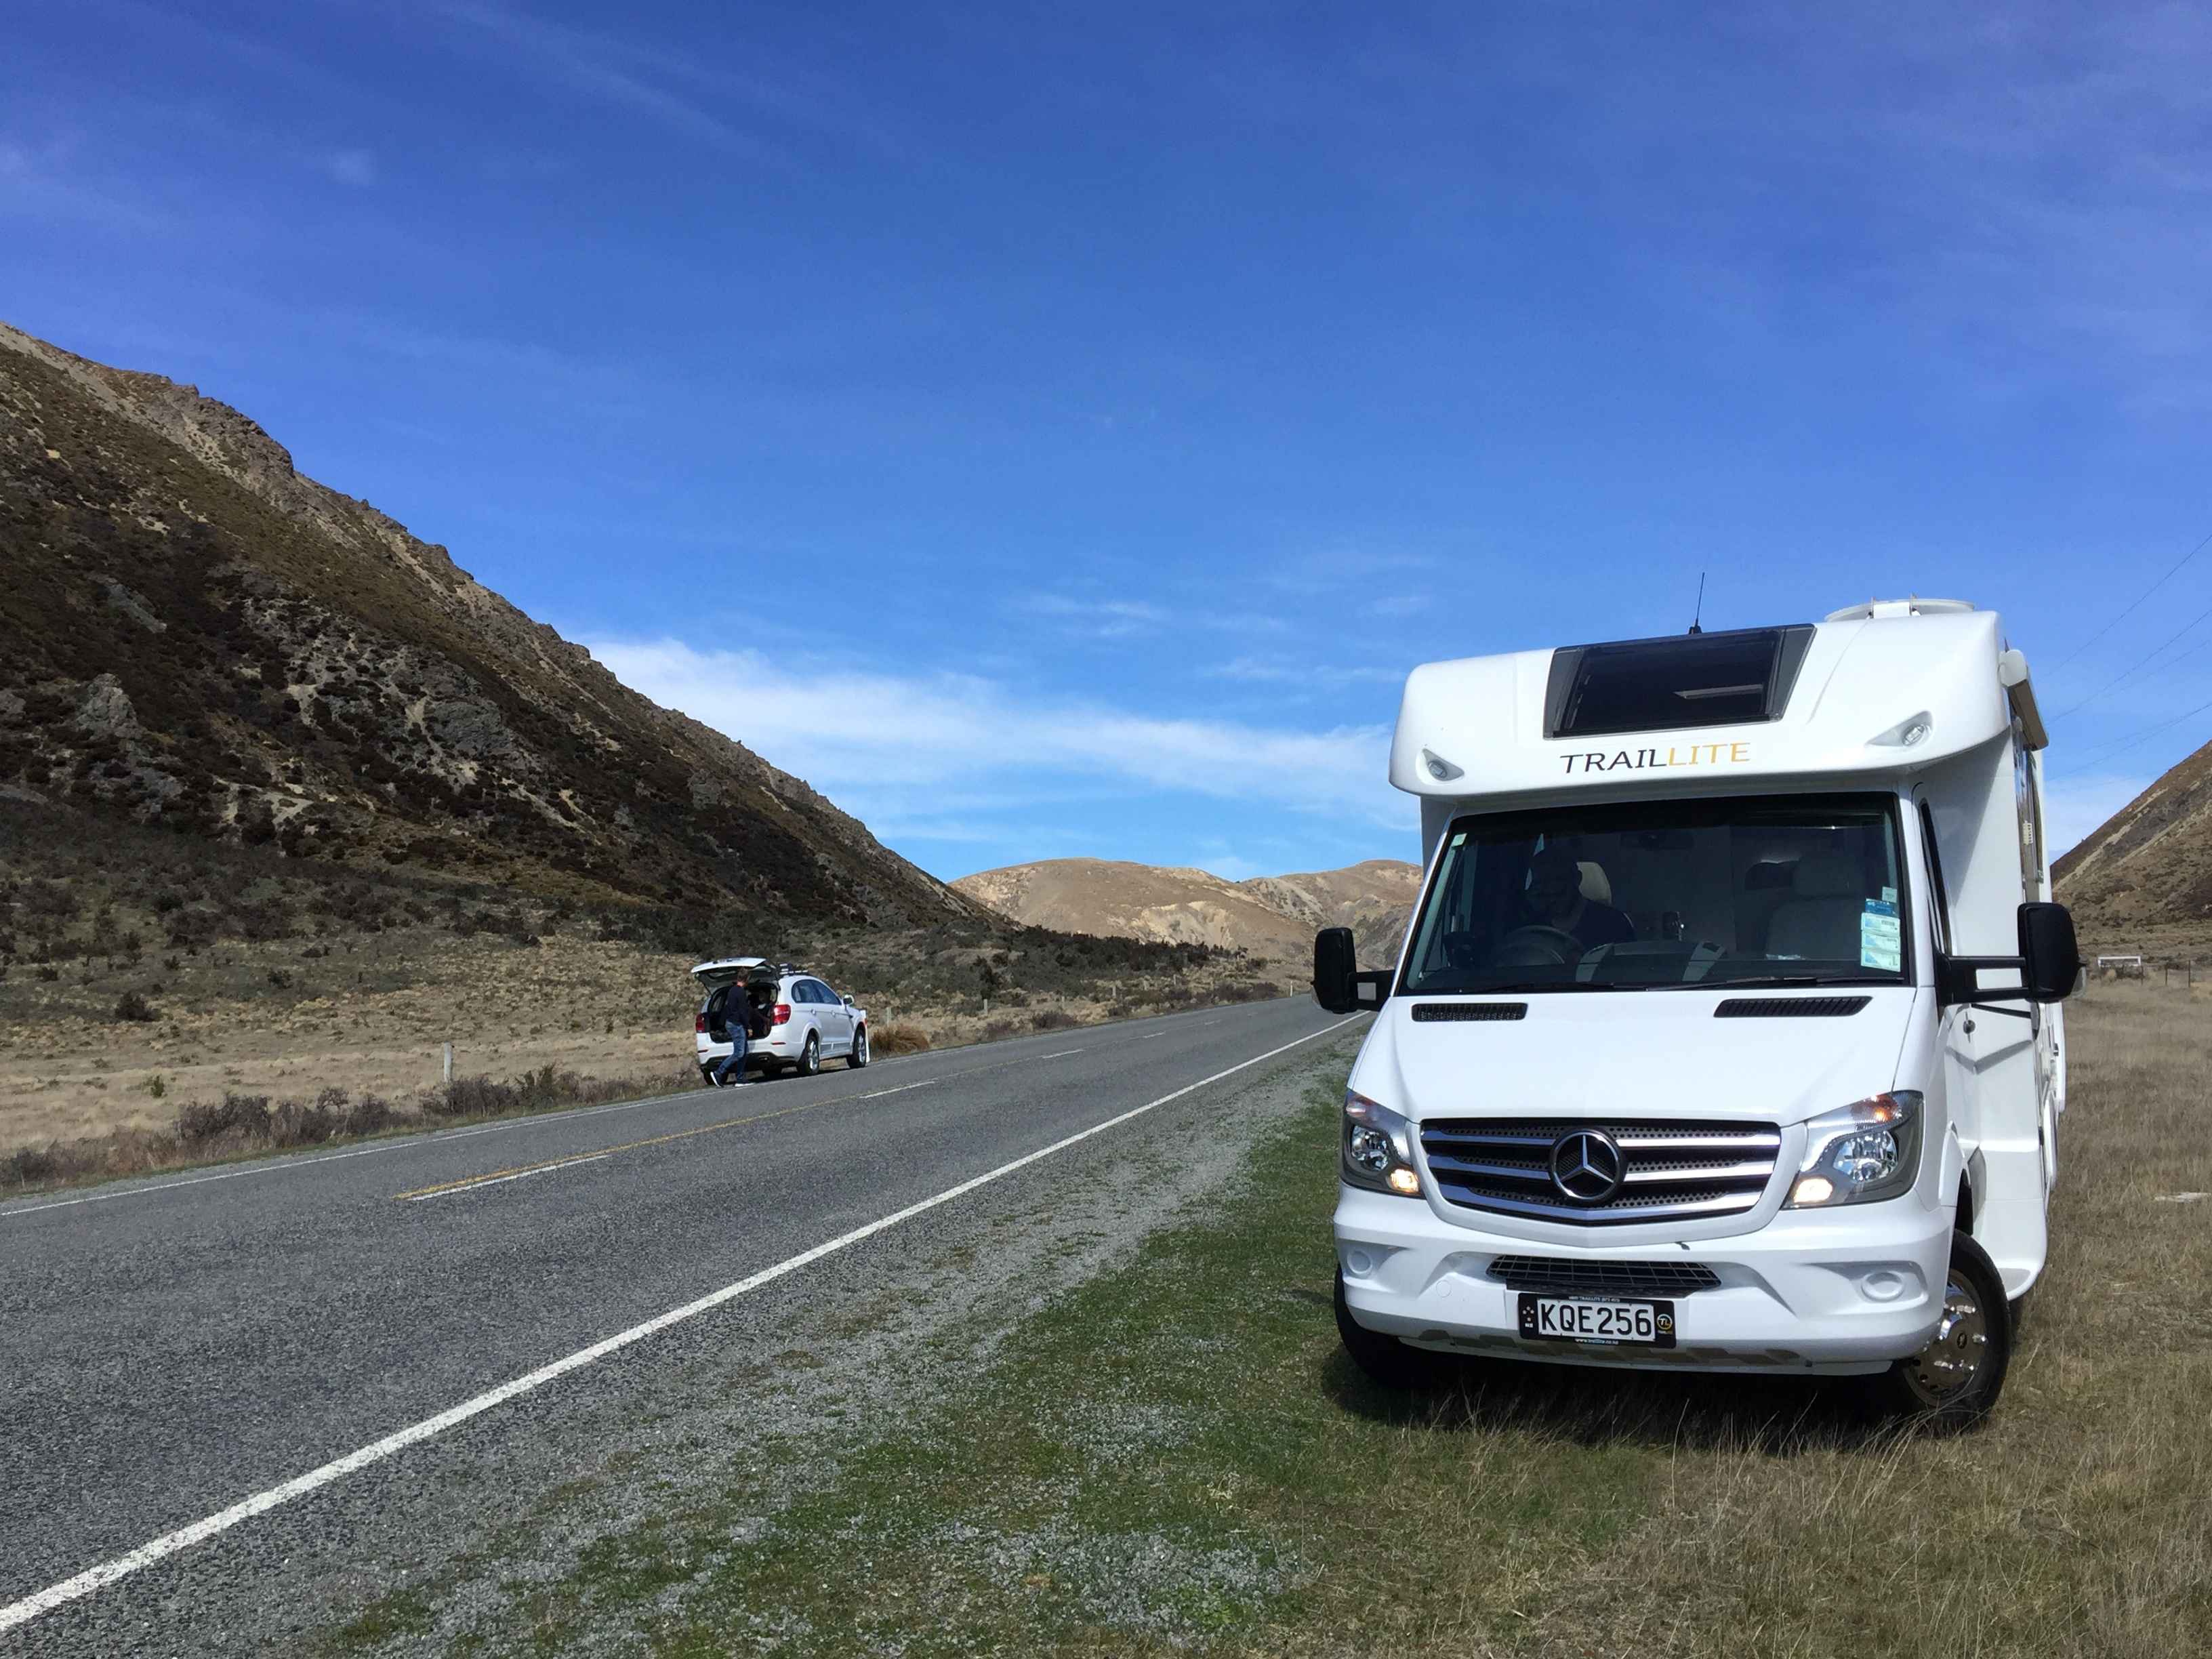 A motorhome or caravan trip from Christchurch to Greymouth